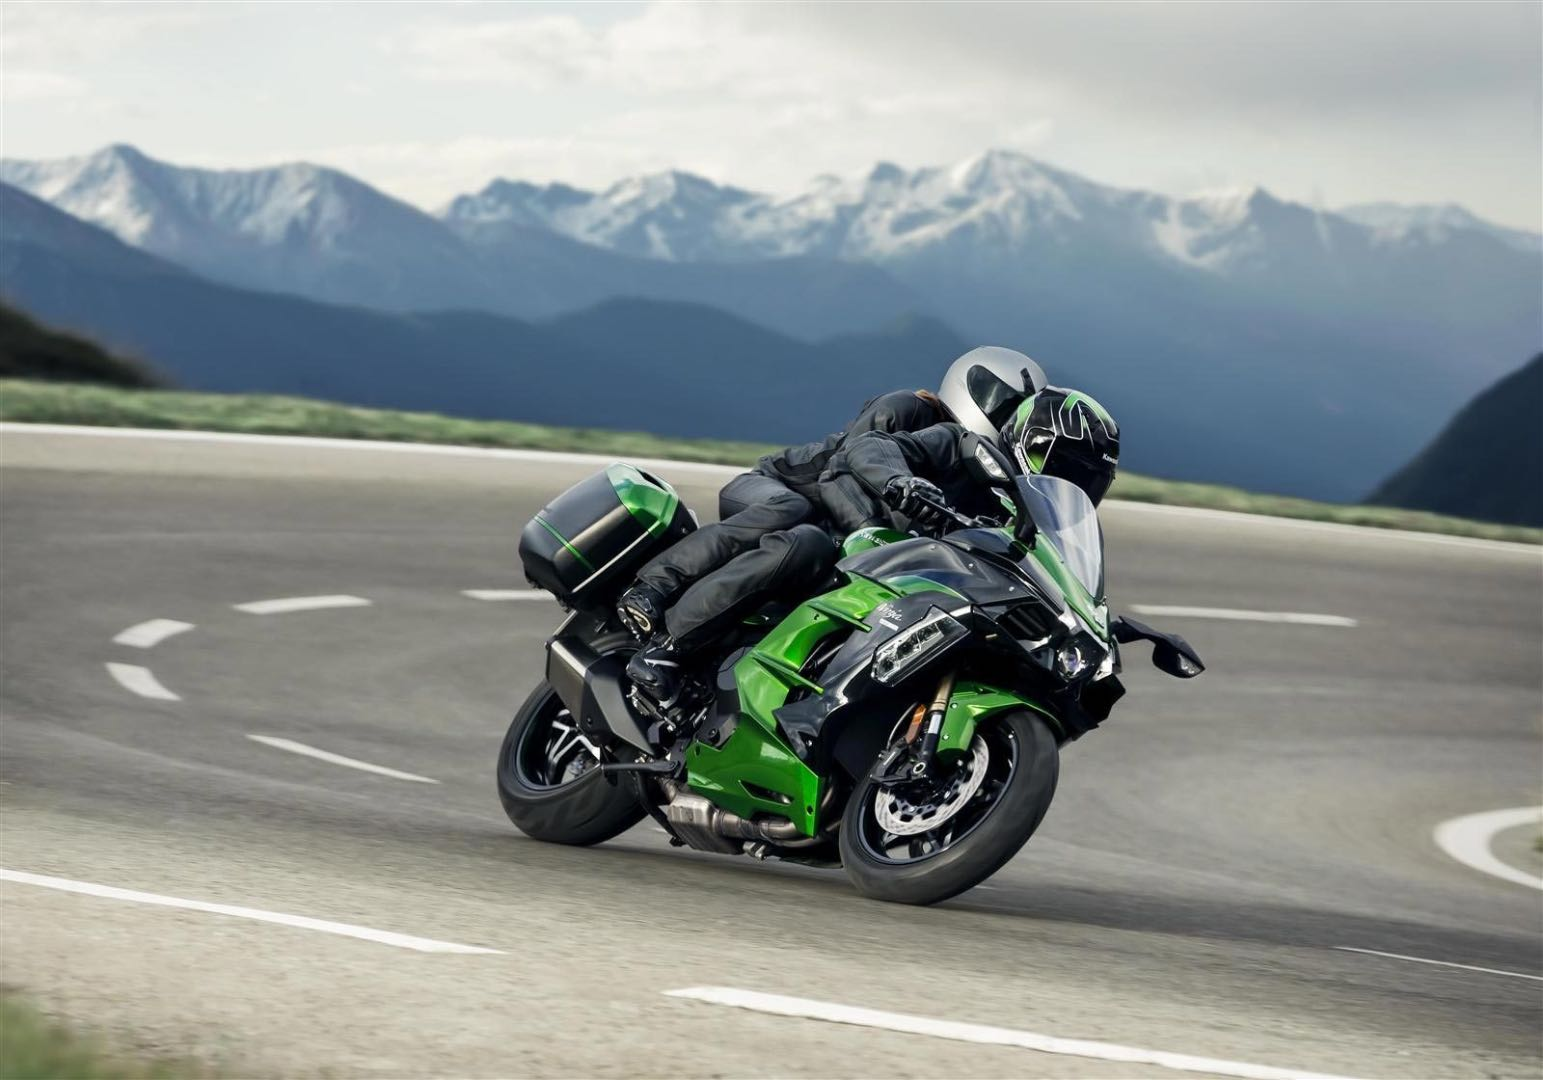 2018 kawasaki ninja h2 sx first look 15 fast facts. Black Bedroom Furniture Sets. Home Design Ideas